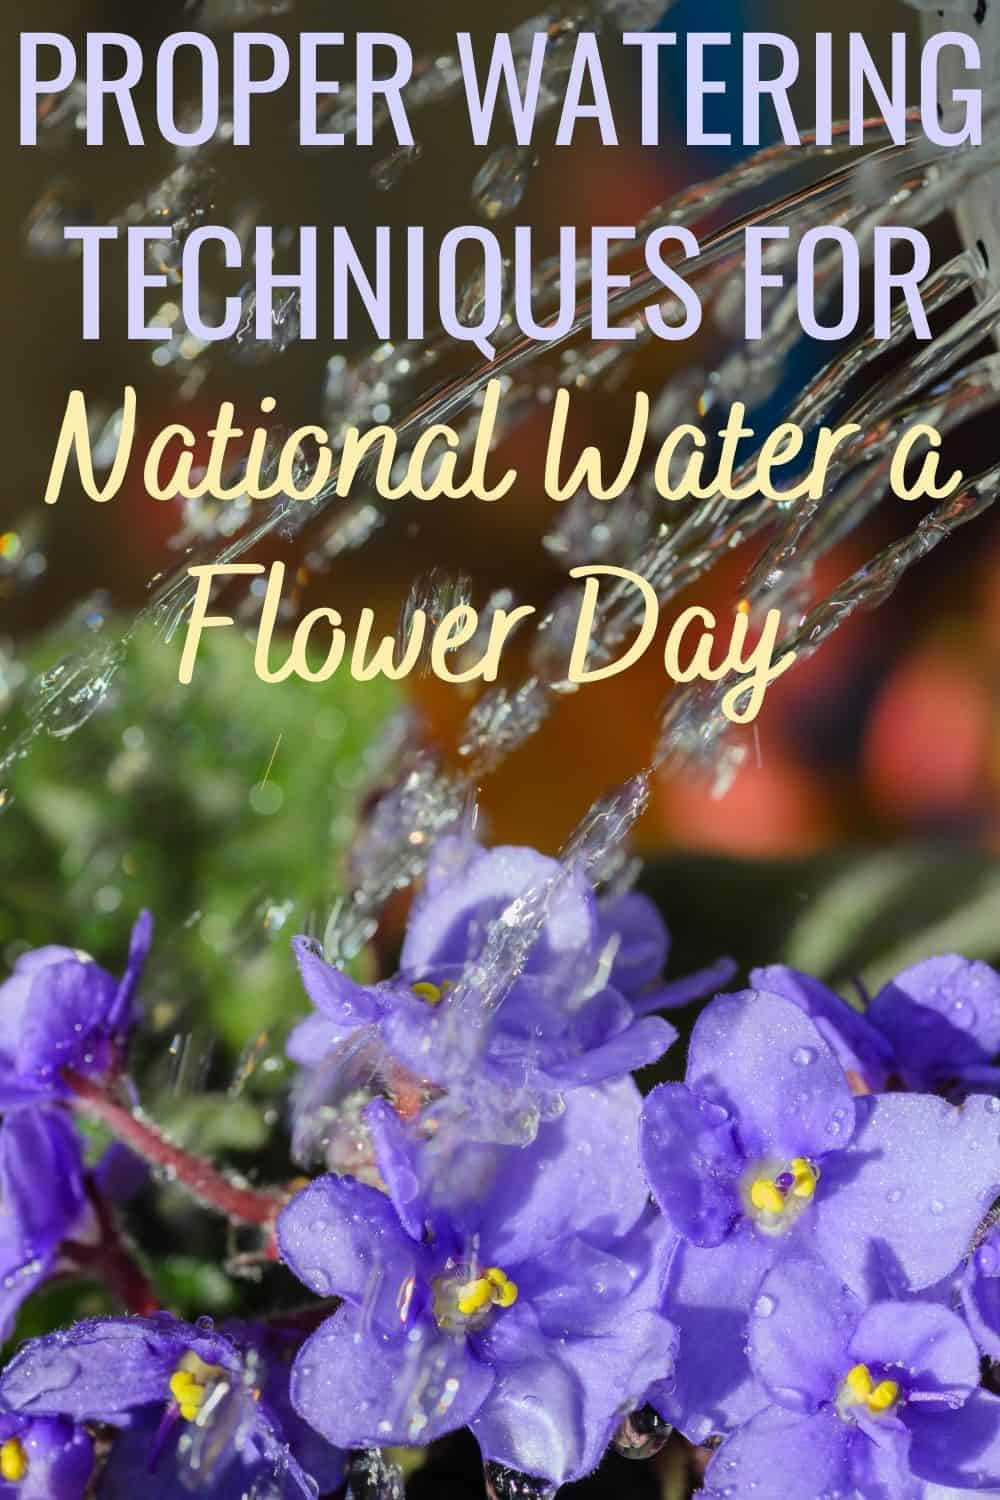 Proper Watering Techniques for National Water a Flower Day